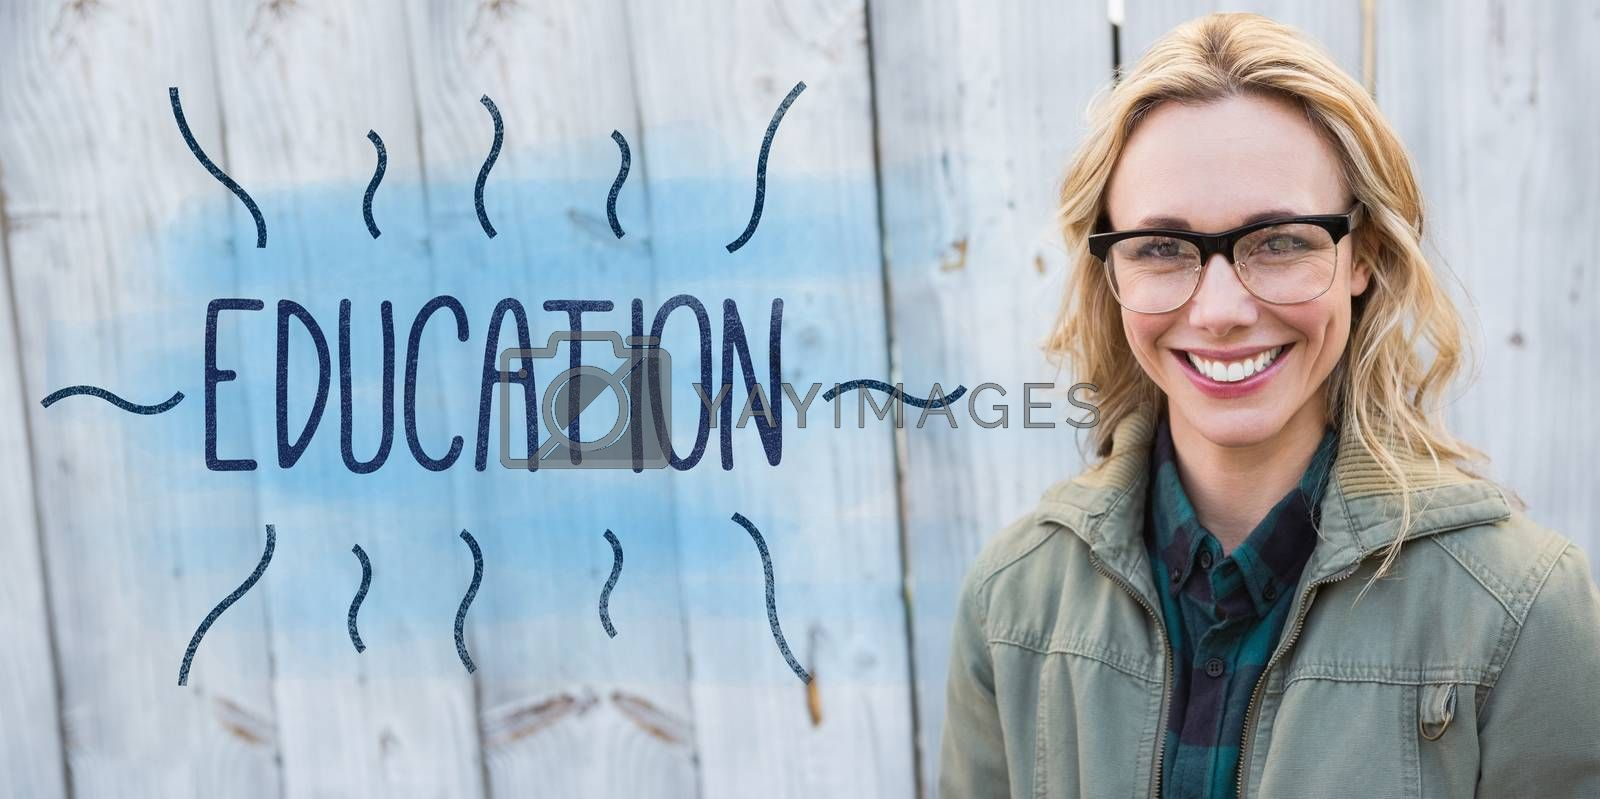 The word education against portrait of blonde in glasses posing